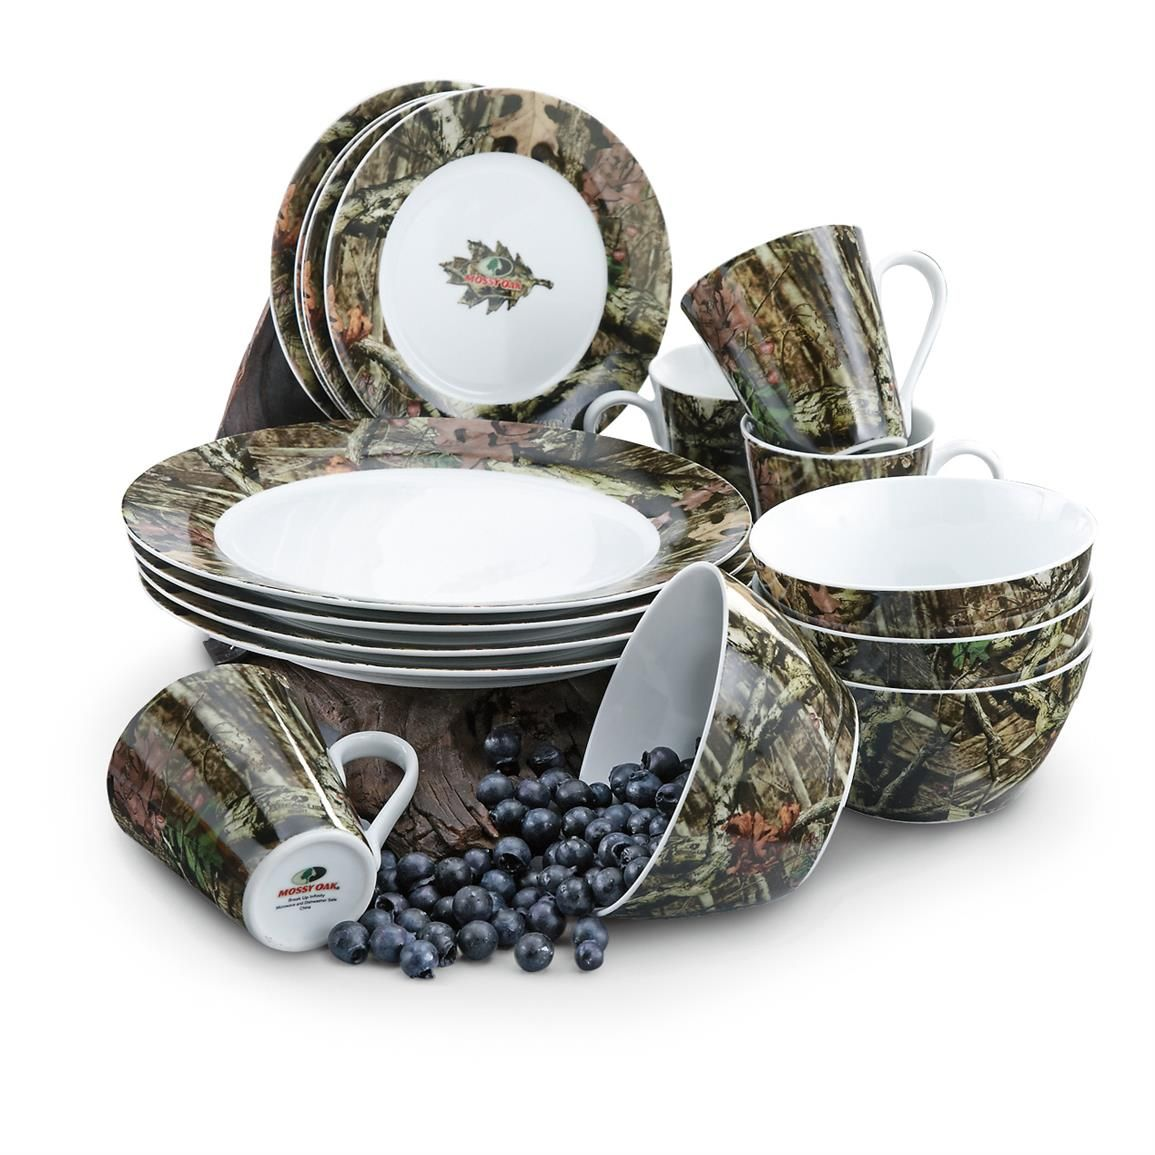 16-Pc. Mossy Oak® Porcelain Dinnerware Set  sc 1 st  Pinterest & 16-Pc. Mossy Oak® Porcelain Dinnerware Set | kitchen | Pinterest ...